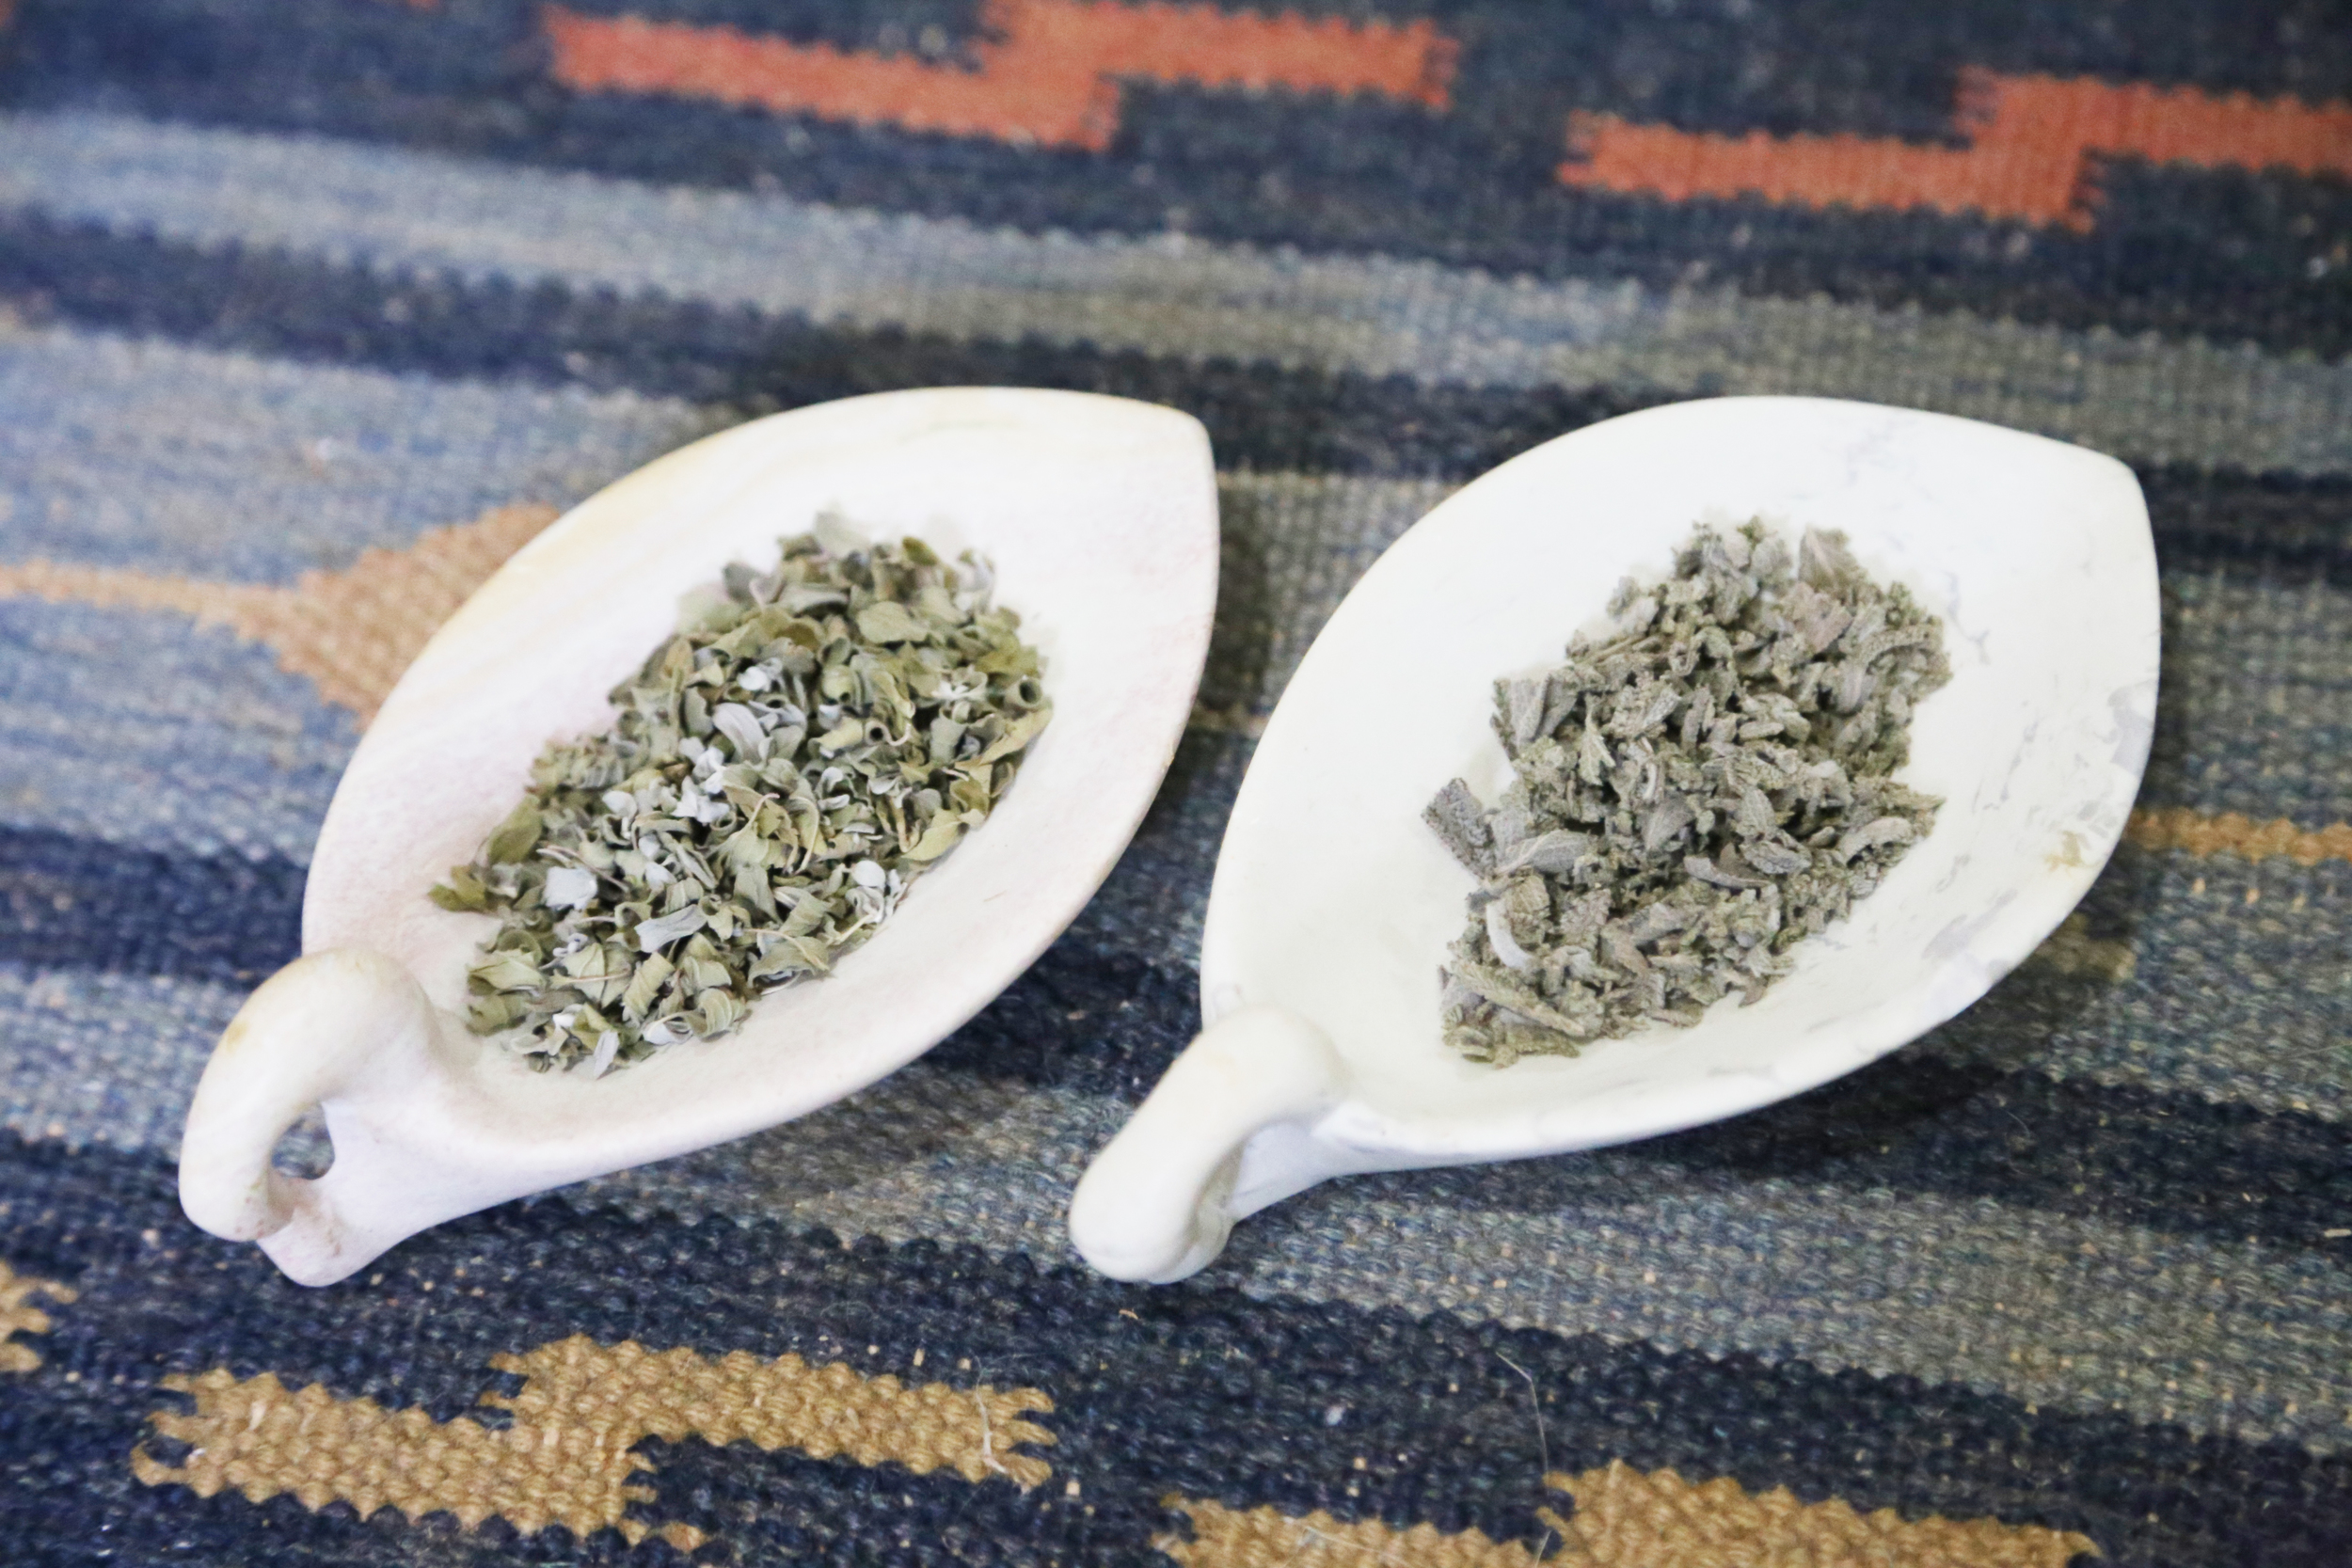 Dried oregano and sage